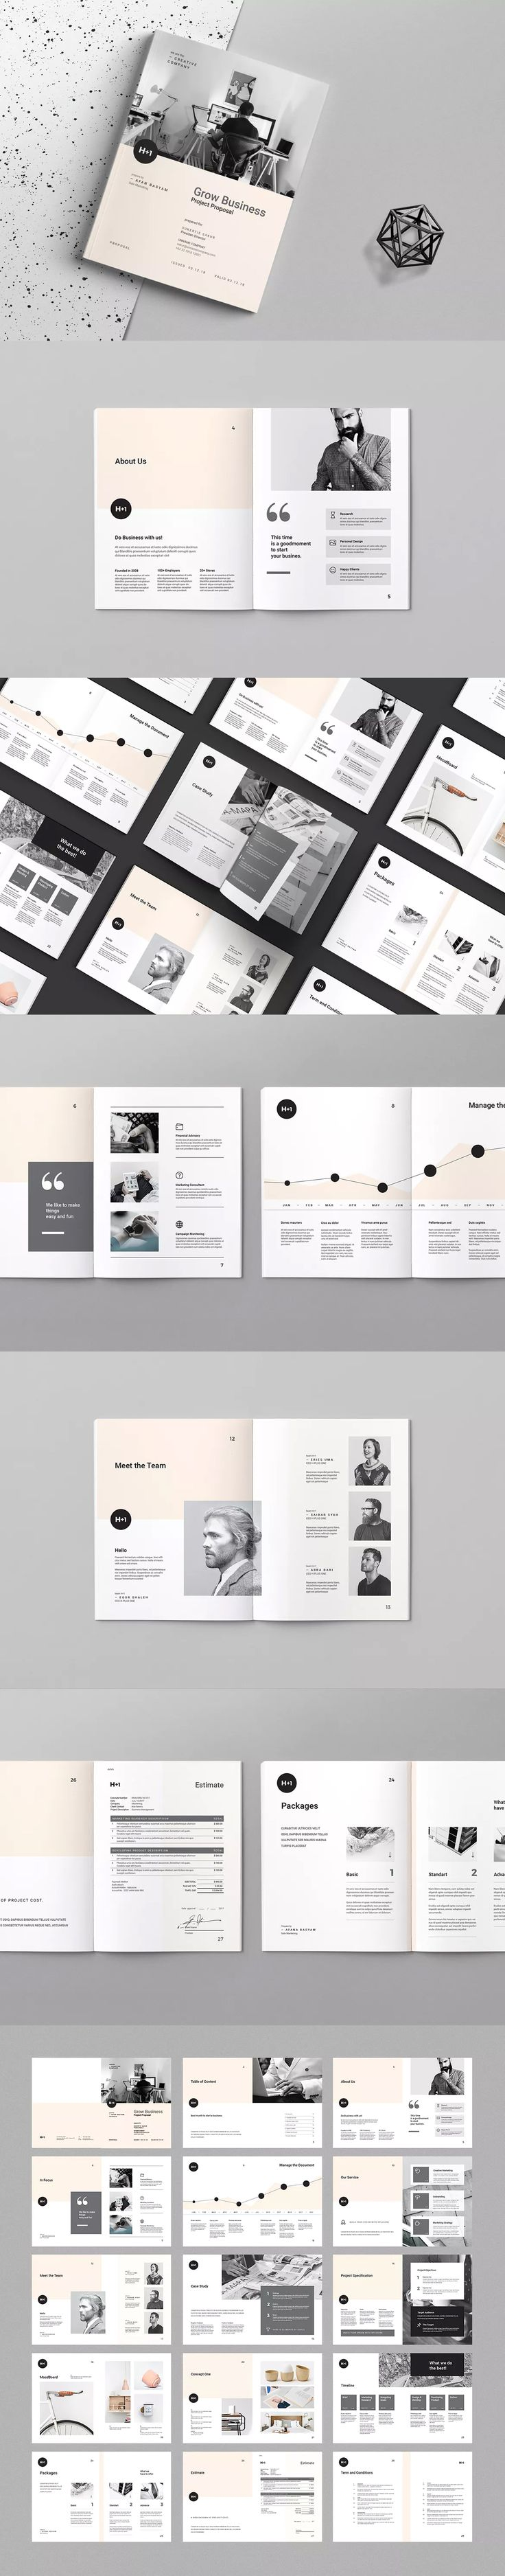 Project Proposal Template InDesign INDD A4 and